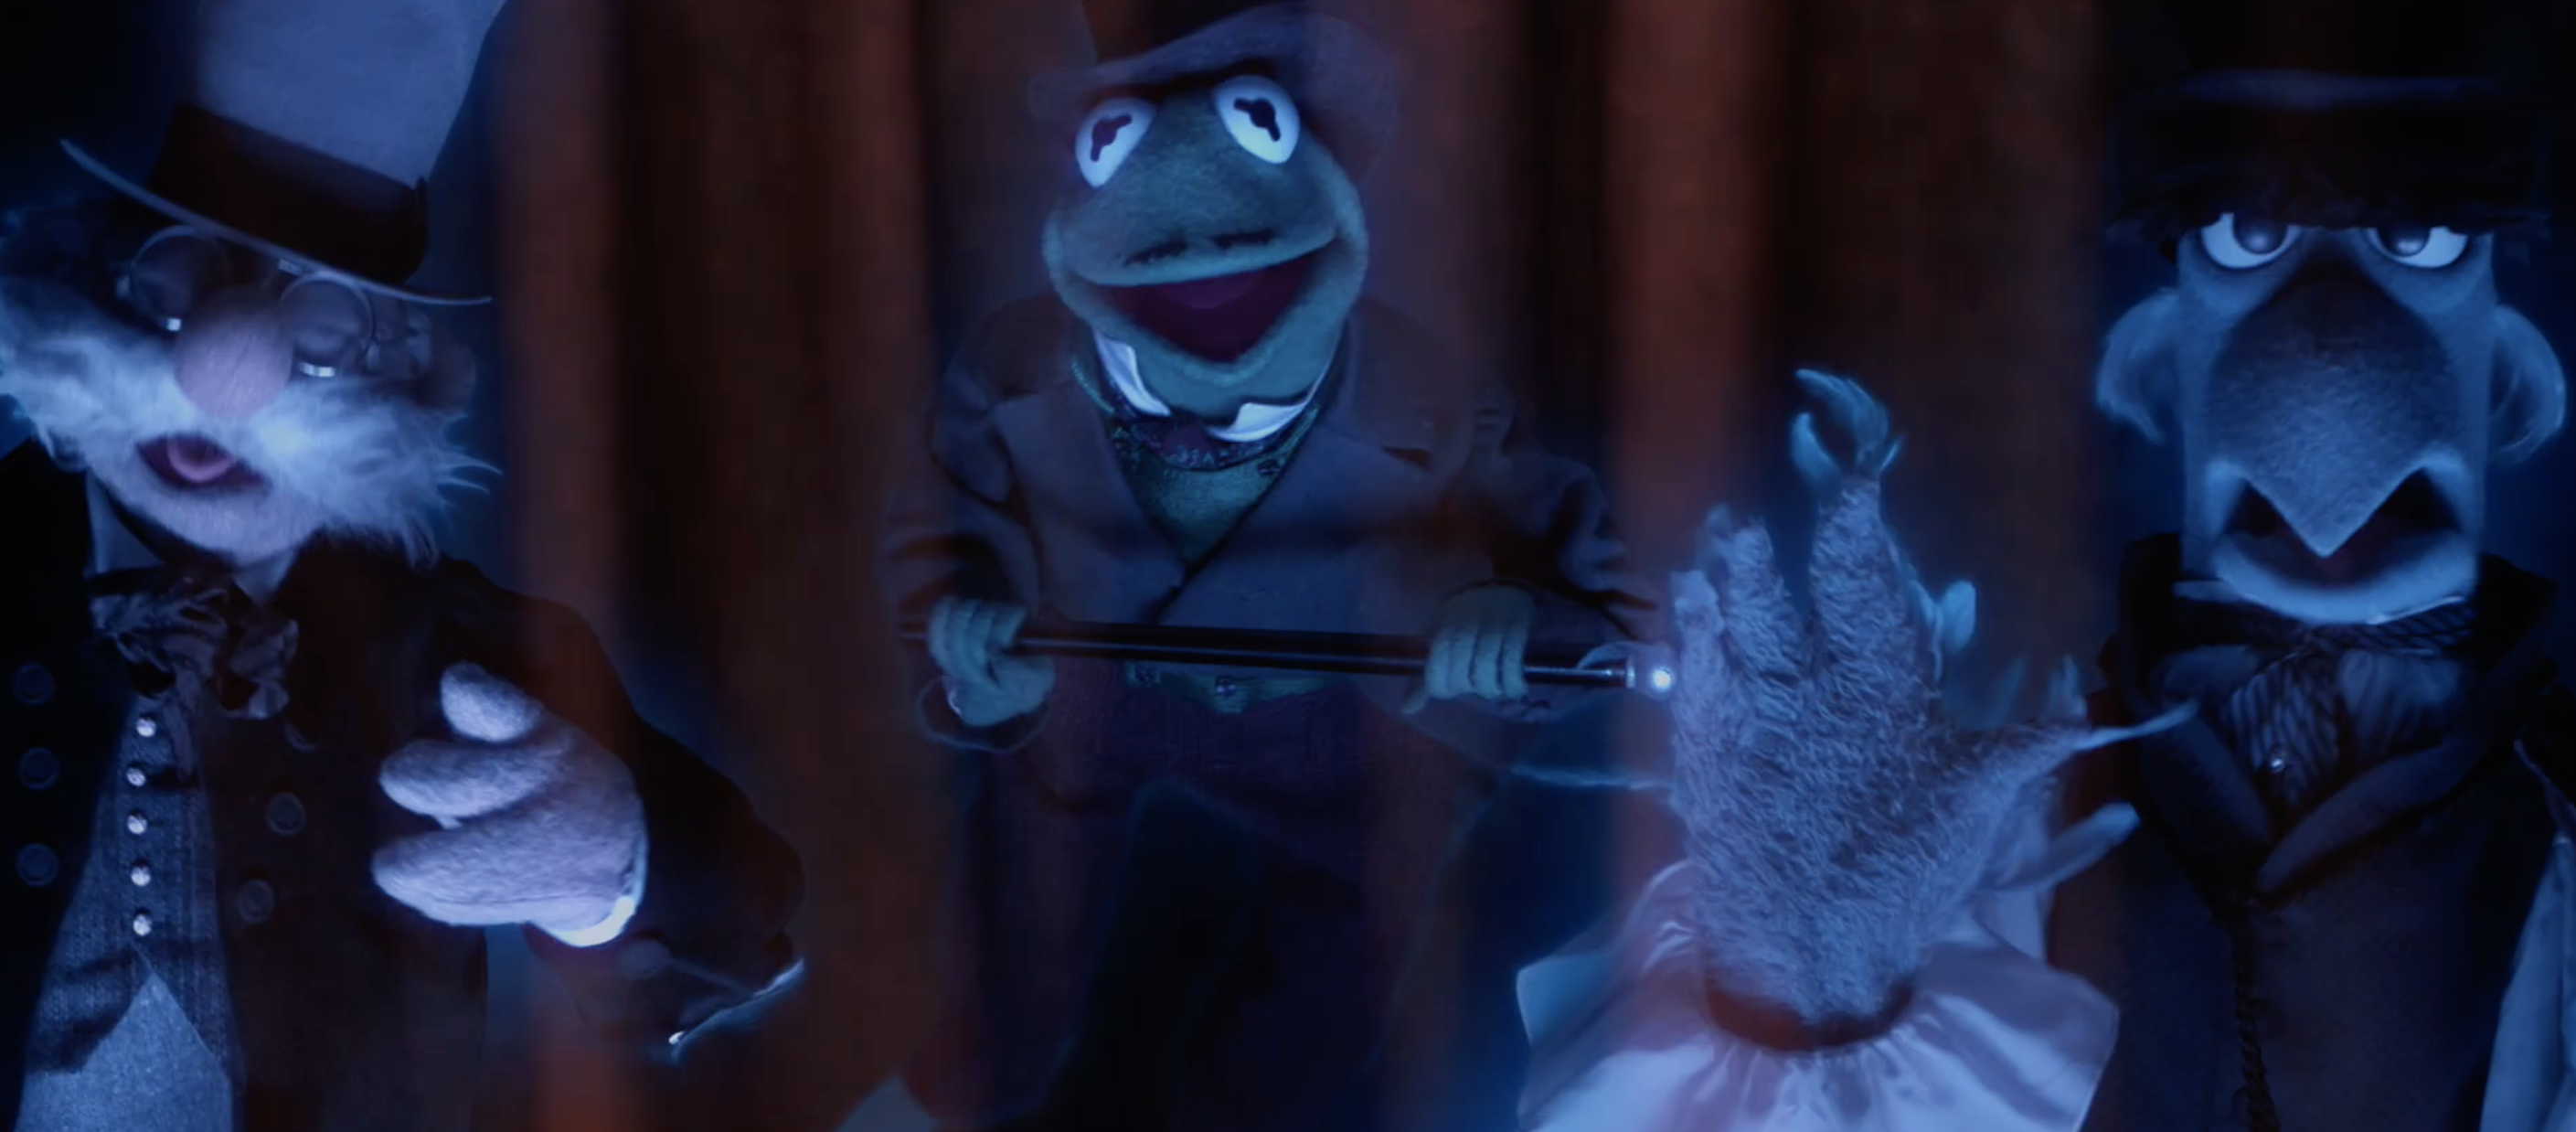 three muppets appear as ghosts, including Kermit and Sam the Eagle